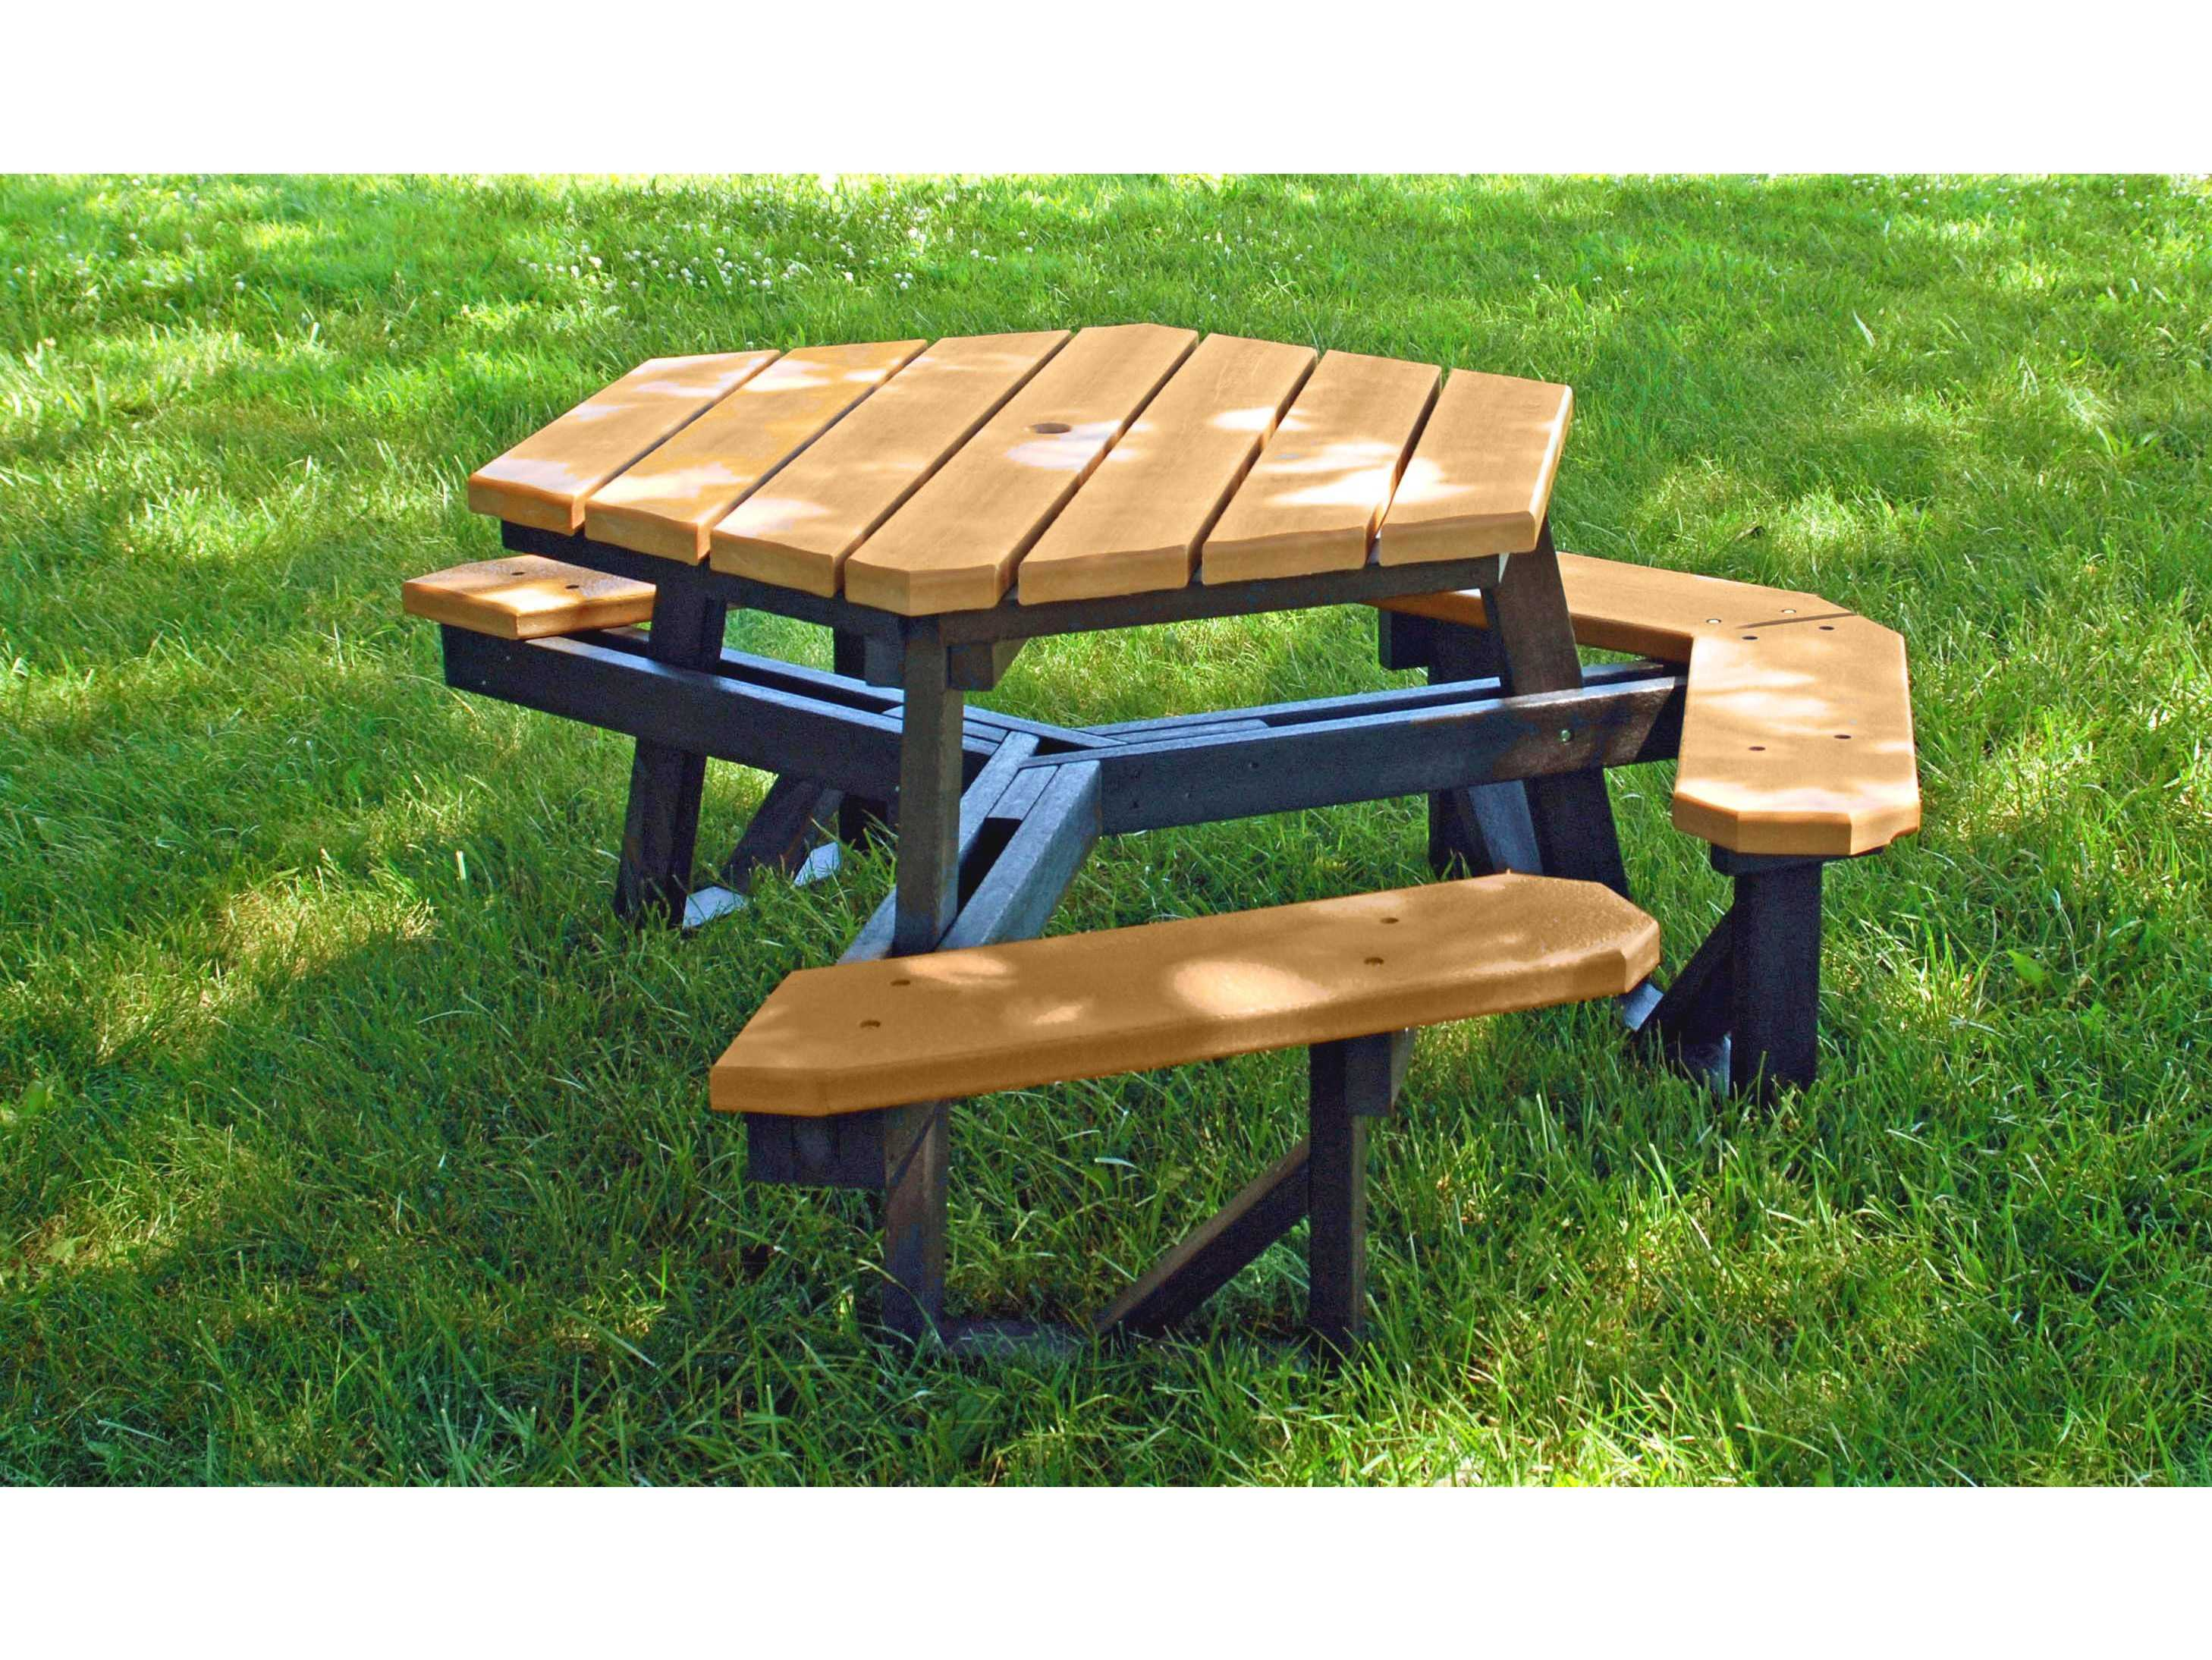 plastic slat options highwood benches product recycled hayneedle lehigh cfm toffee highwoodusathelehighbench bench